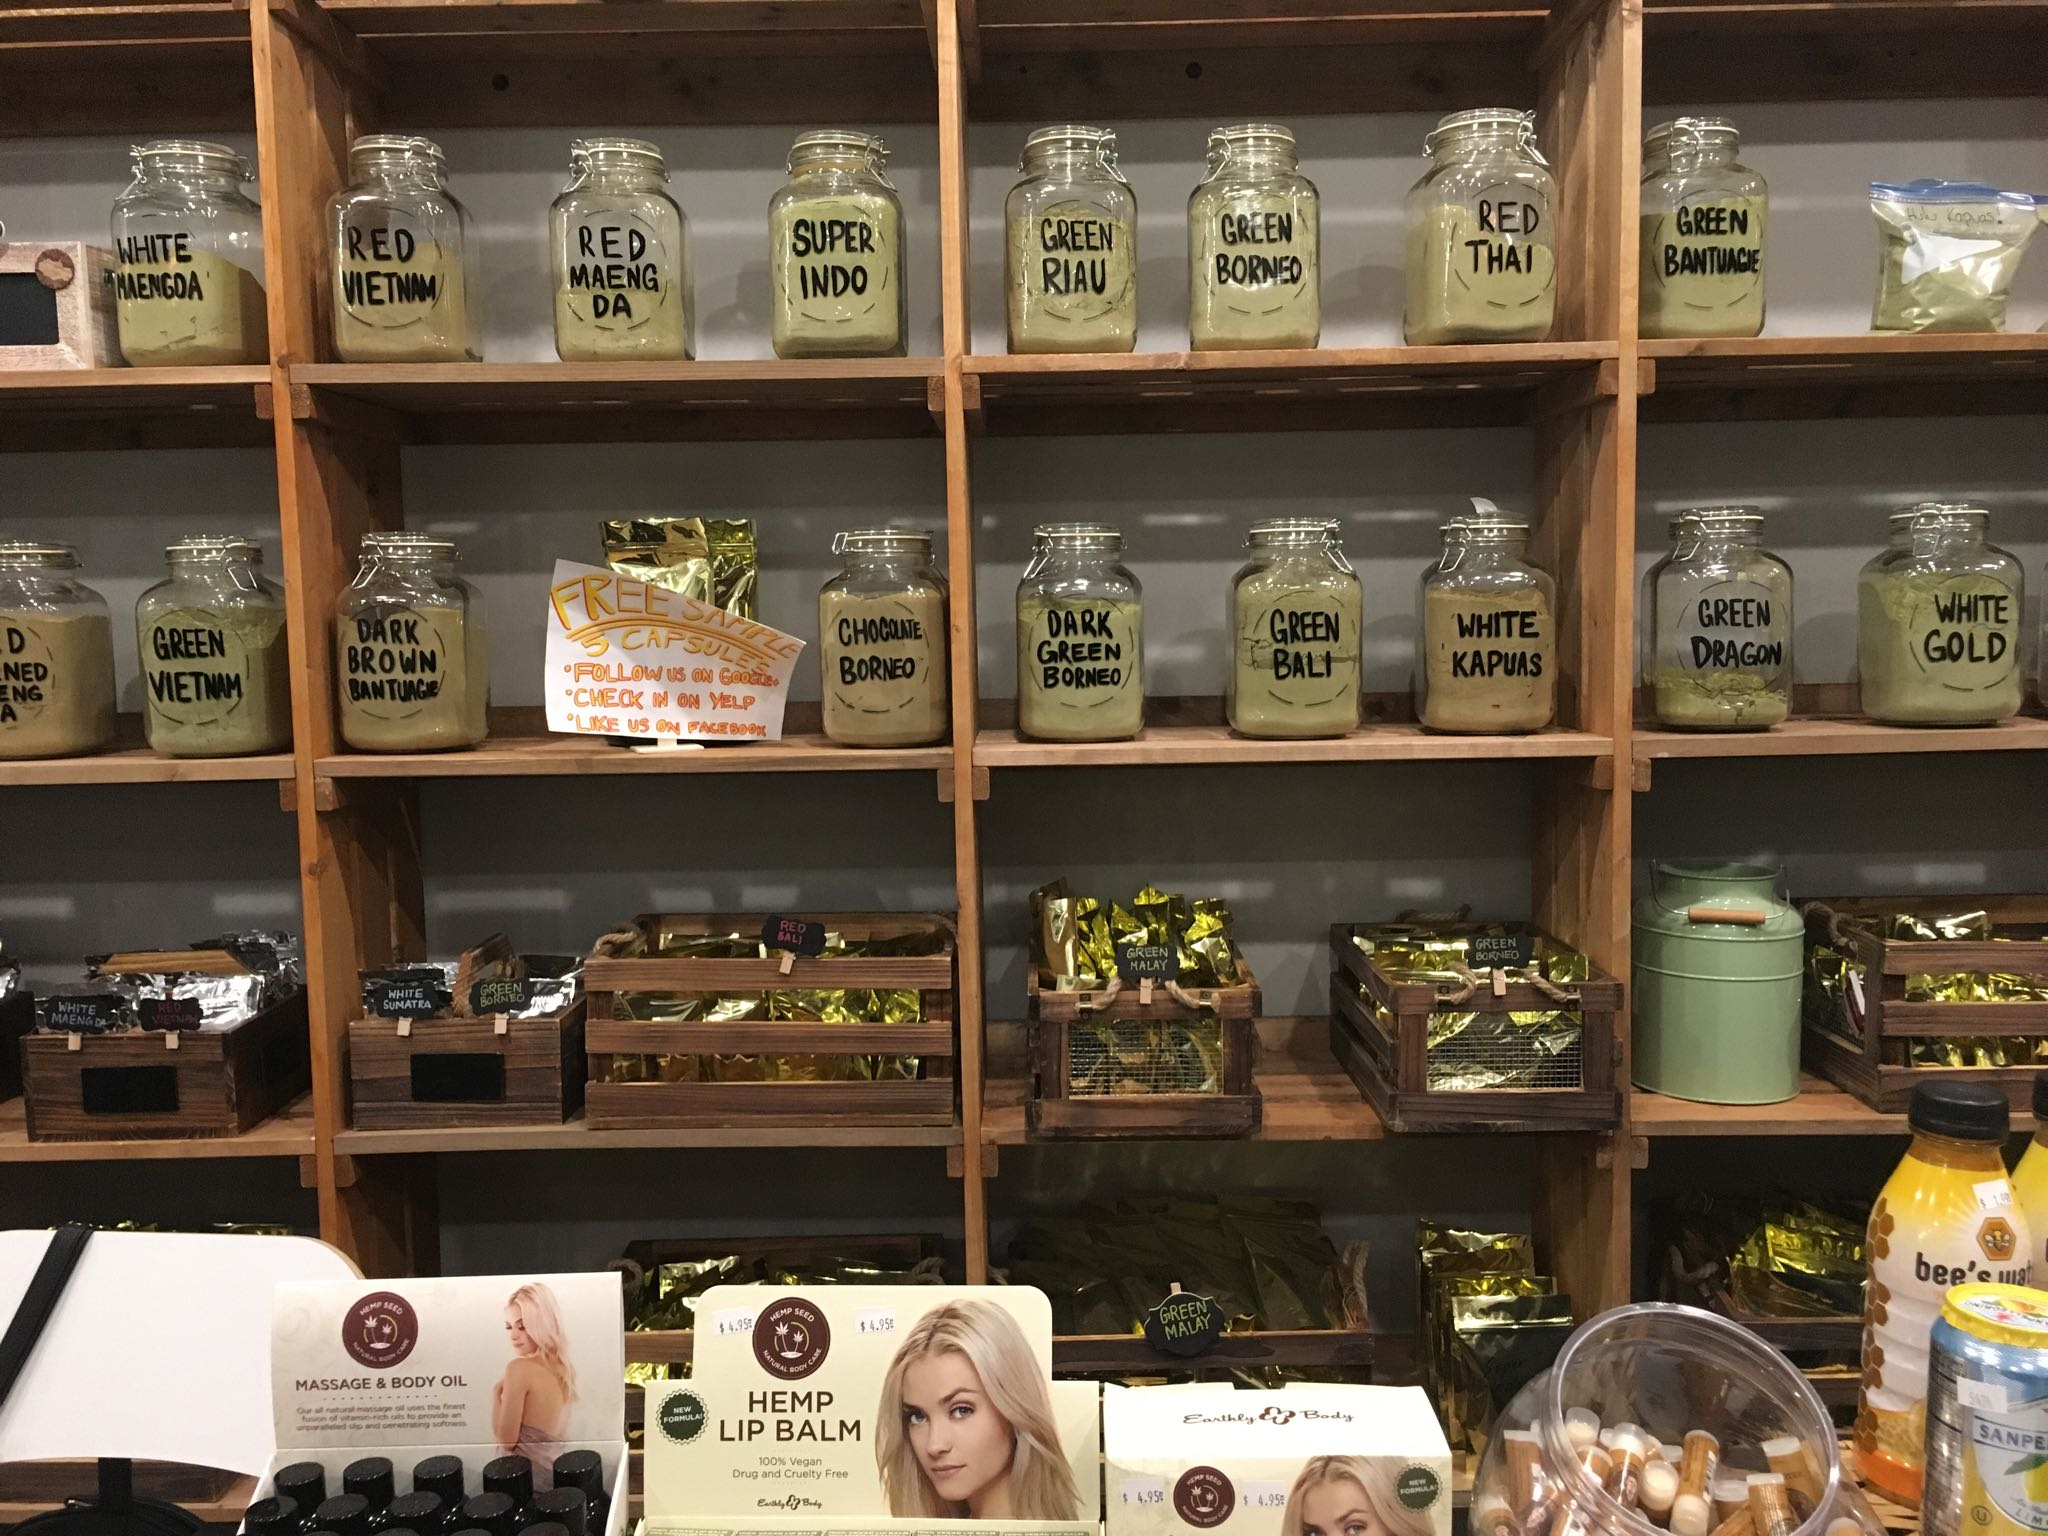 Find Out What Stores Sell Kratom and What to Expect